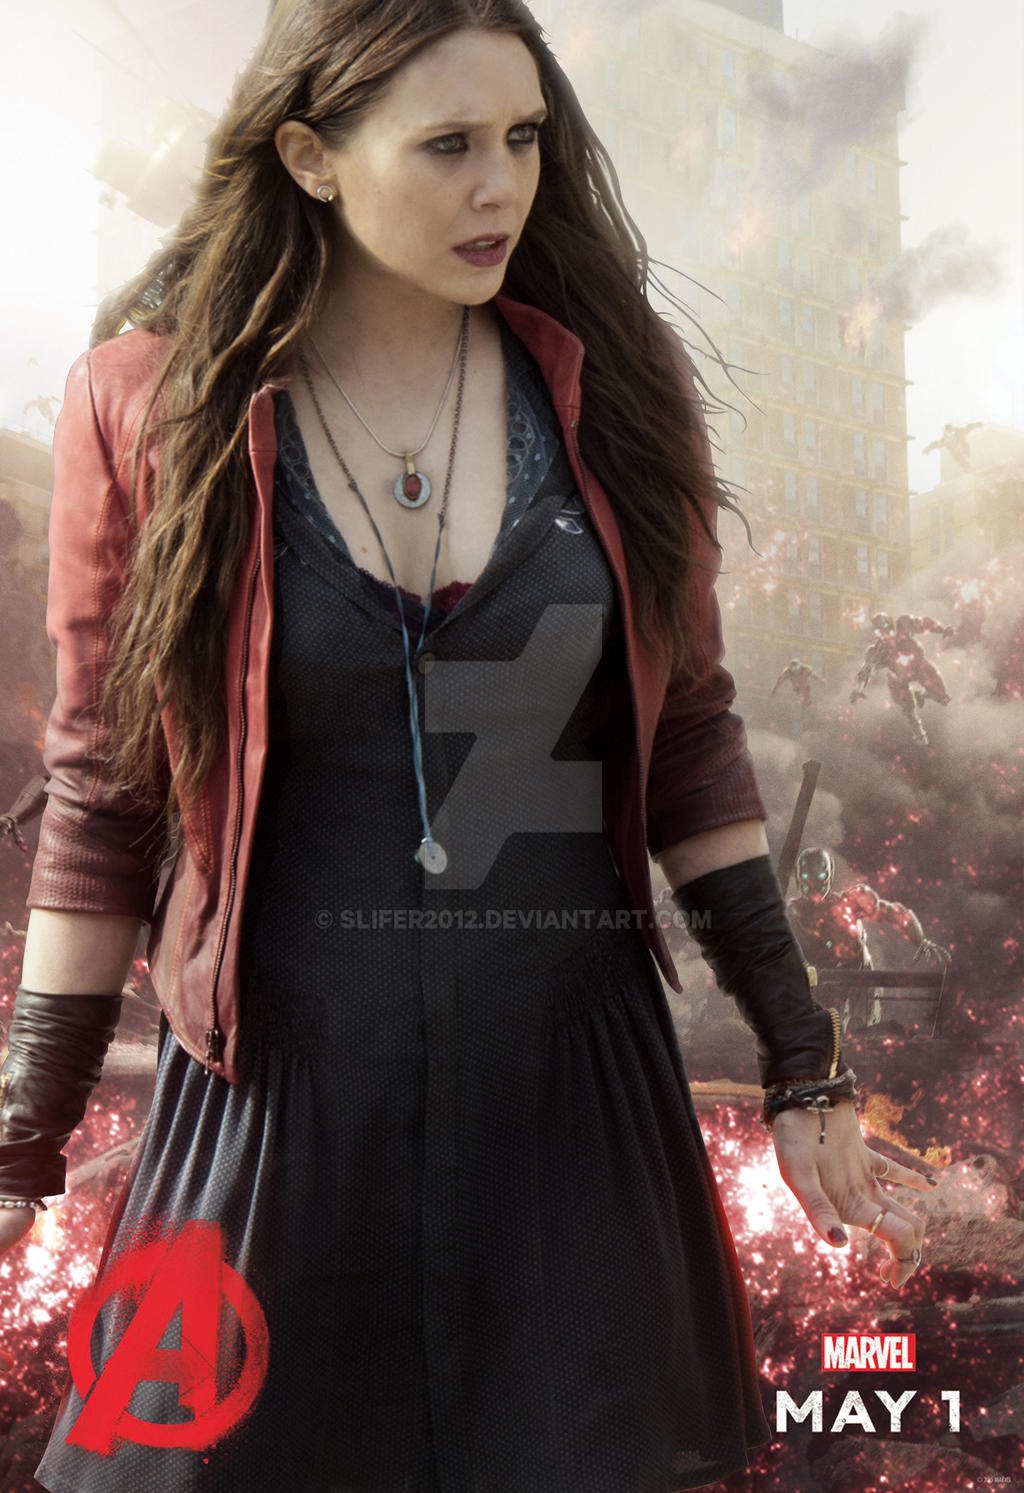 Scarlet Witch Avengers Age of Ultron by Slifer2012 on DeviantArt